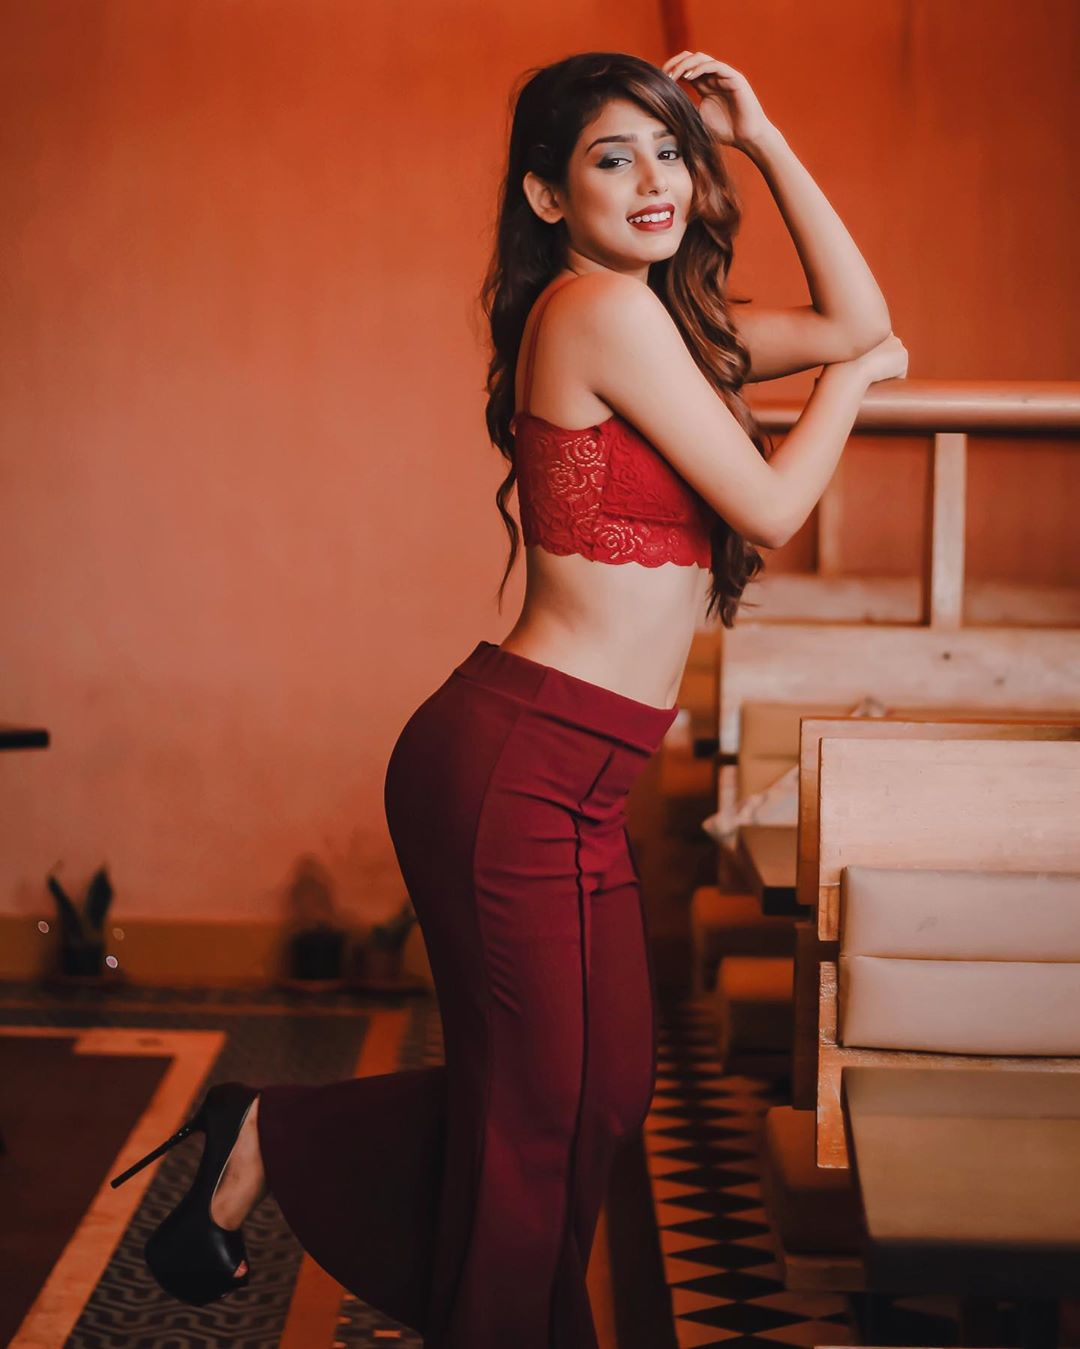 dating girl late nigt lahore